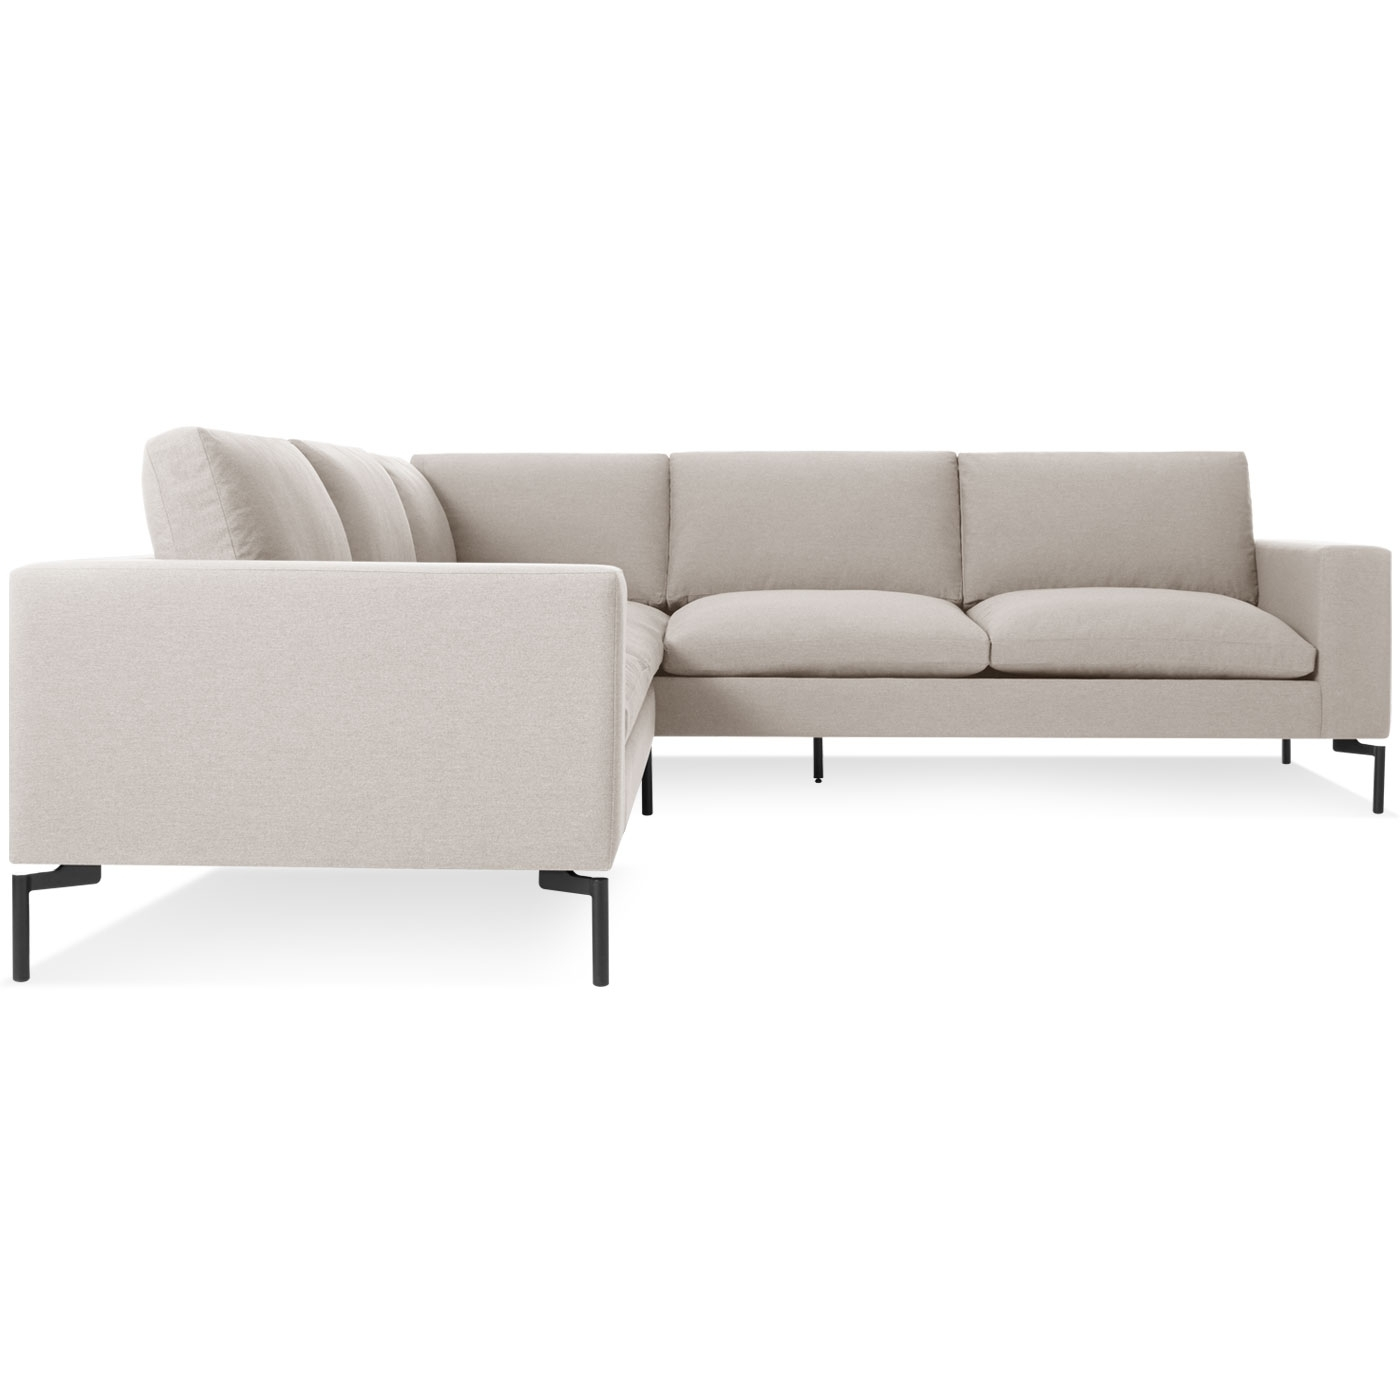 Small Sectional Sofas Within Widely Used New Standard Small Sectional Sofa – Modern Sofas (View 13 of 20)